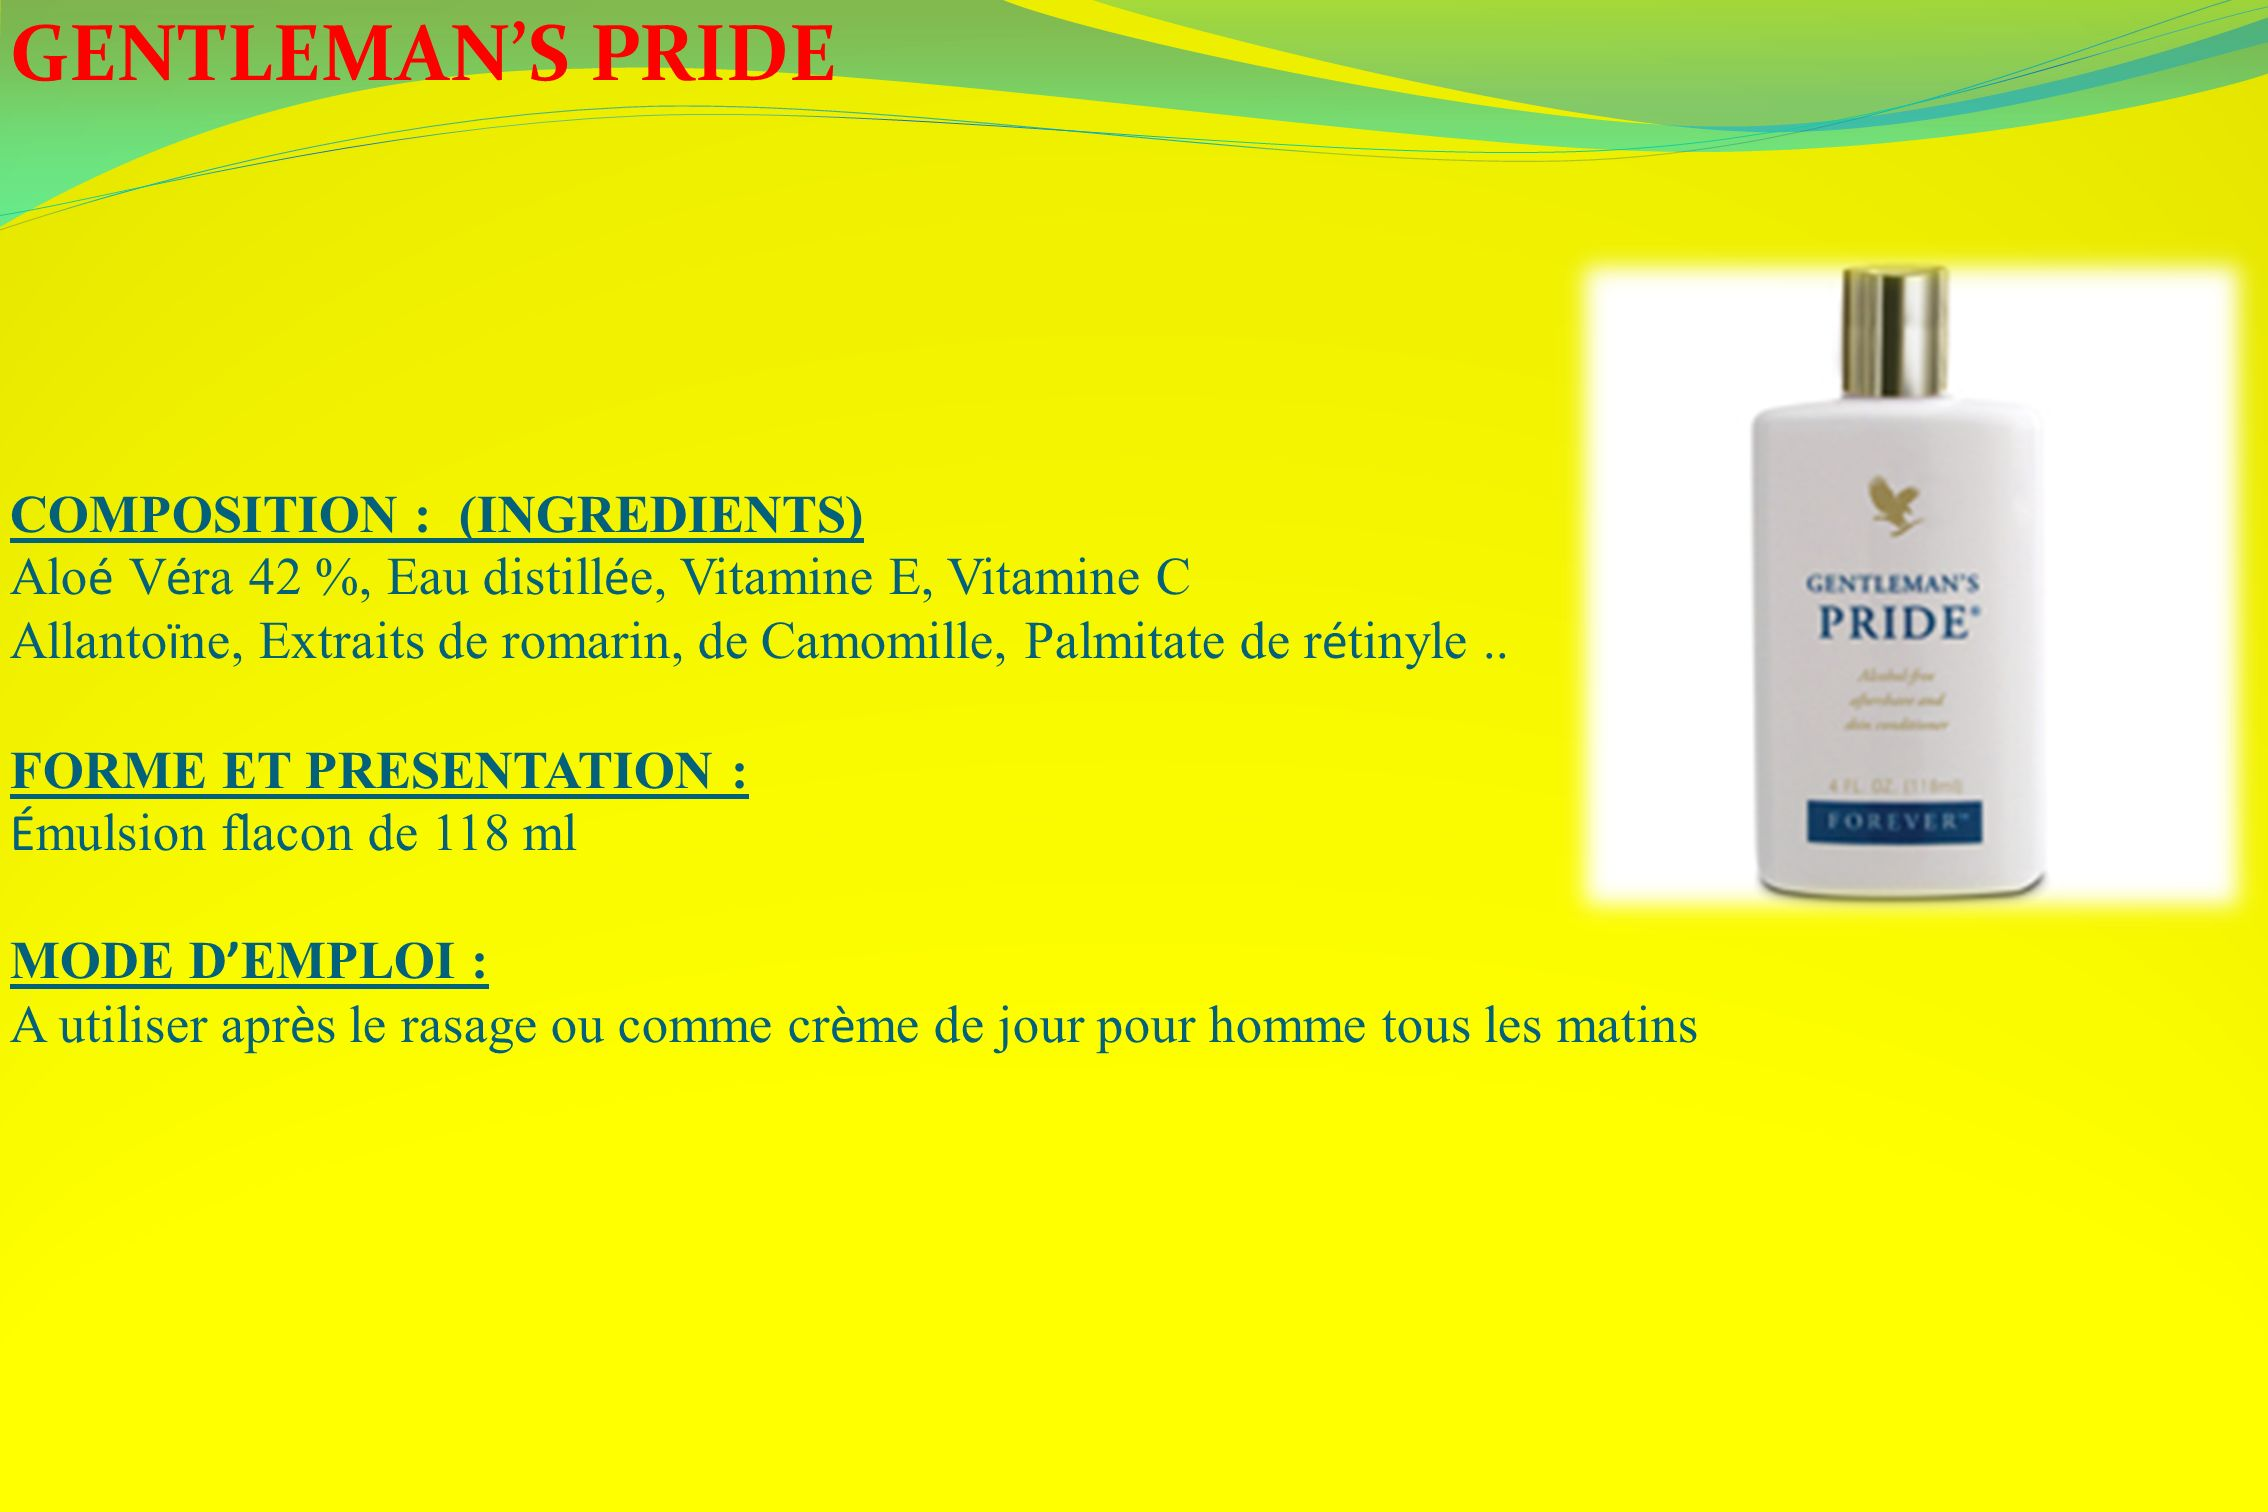 GENTLEMAN'S PRIDE COMPOSITION : (INGREDIENTS)